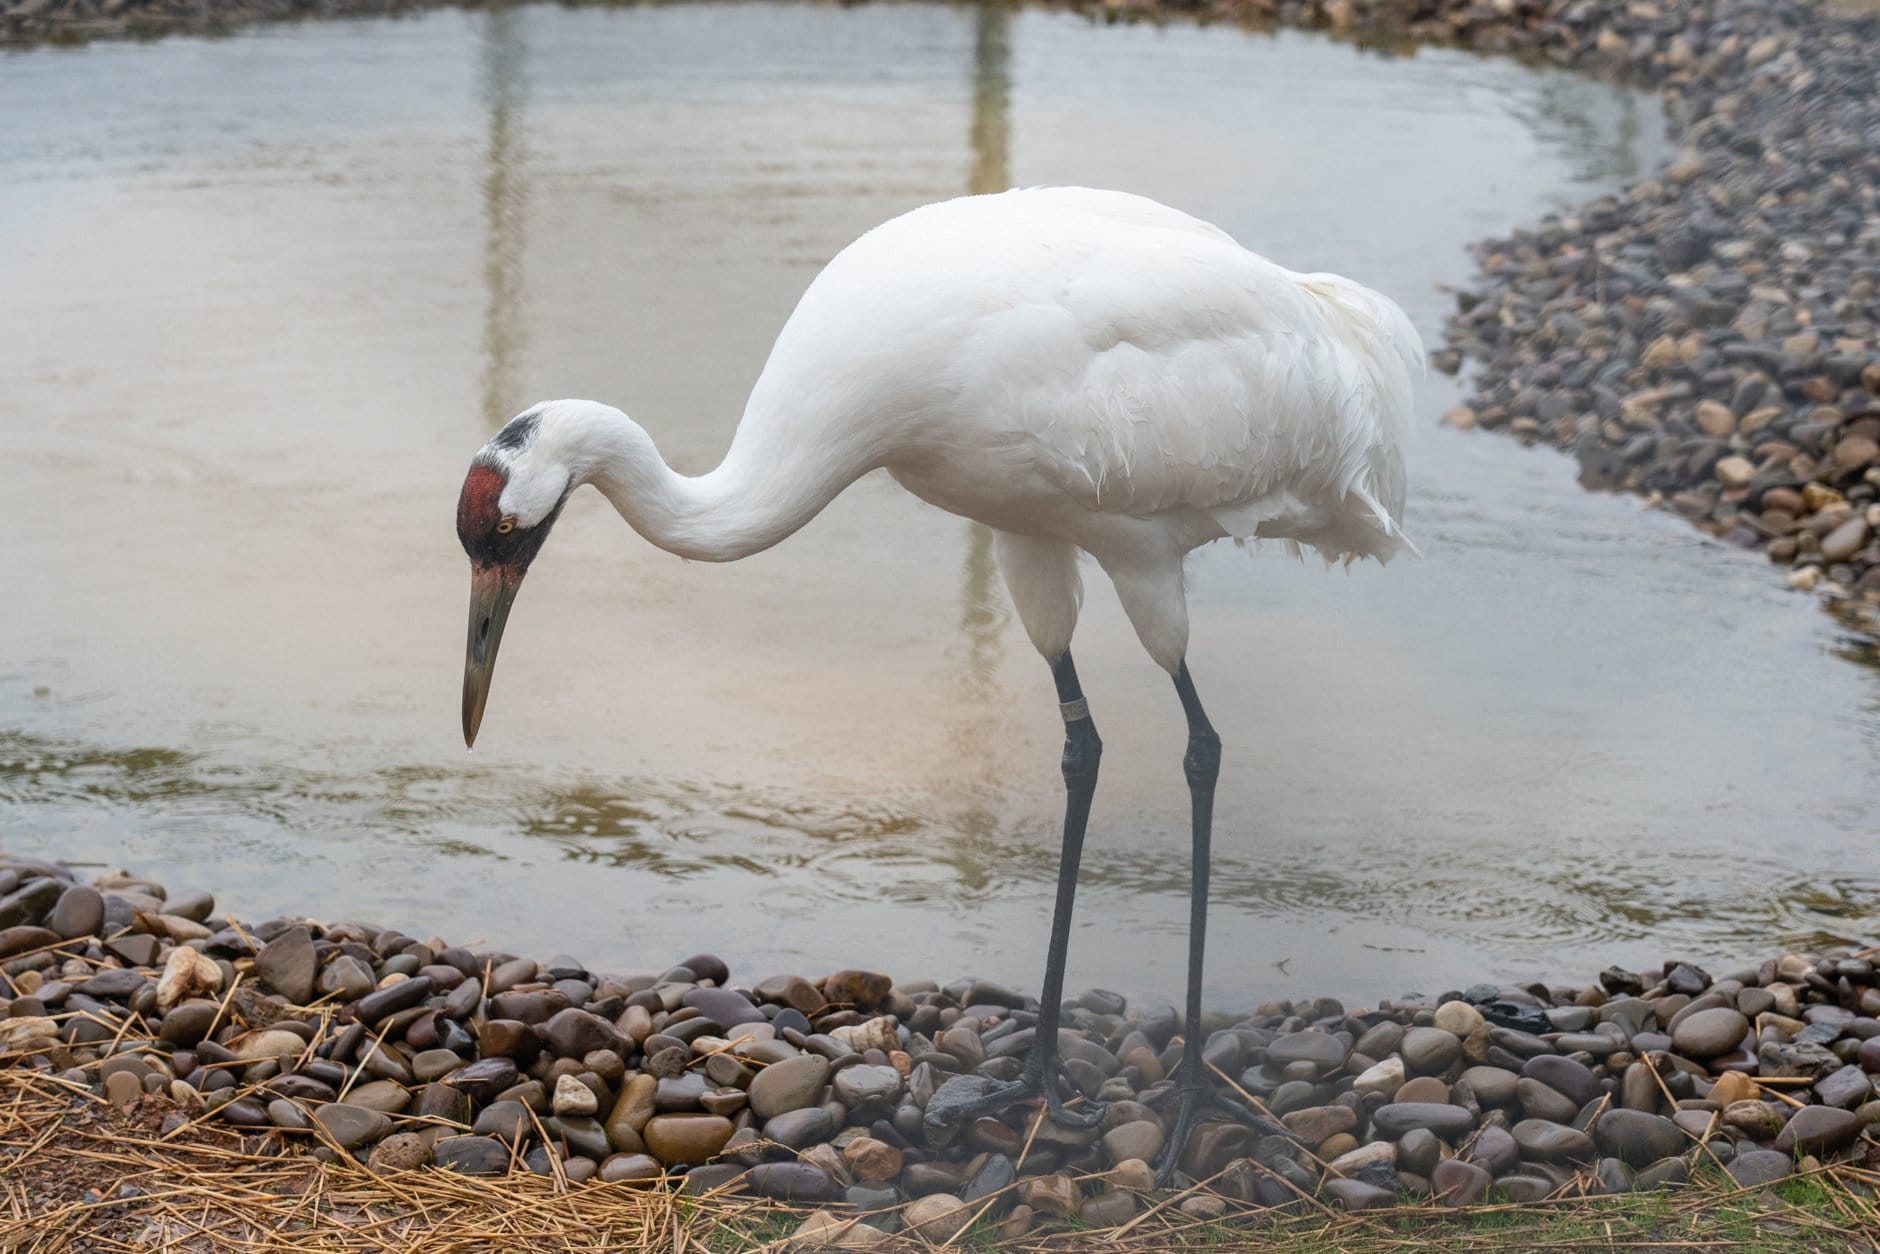 A Whooping crane at the Smithsonian Conservation Biology Institute. (Photo by Skip Brown, SCBI)